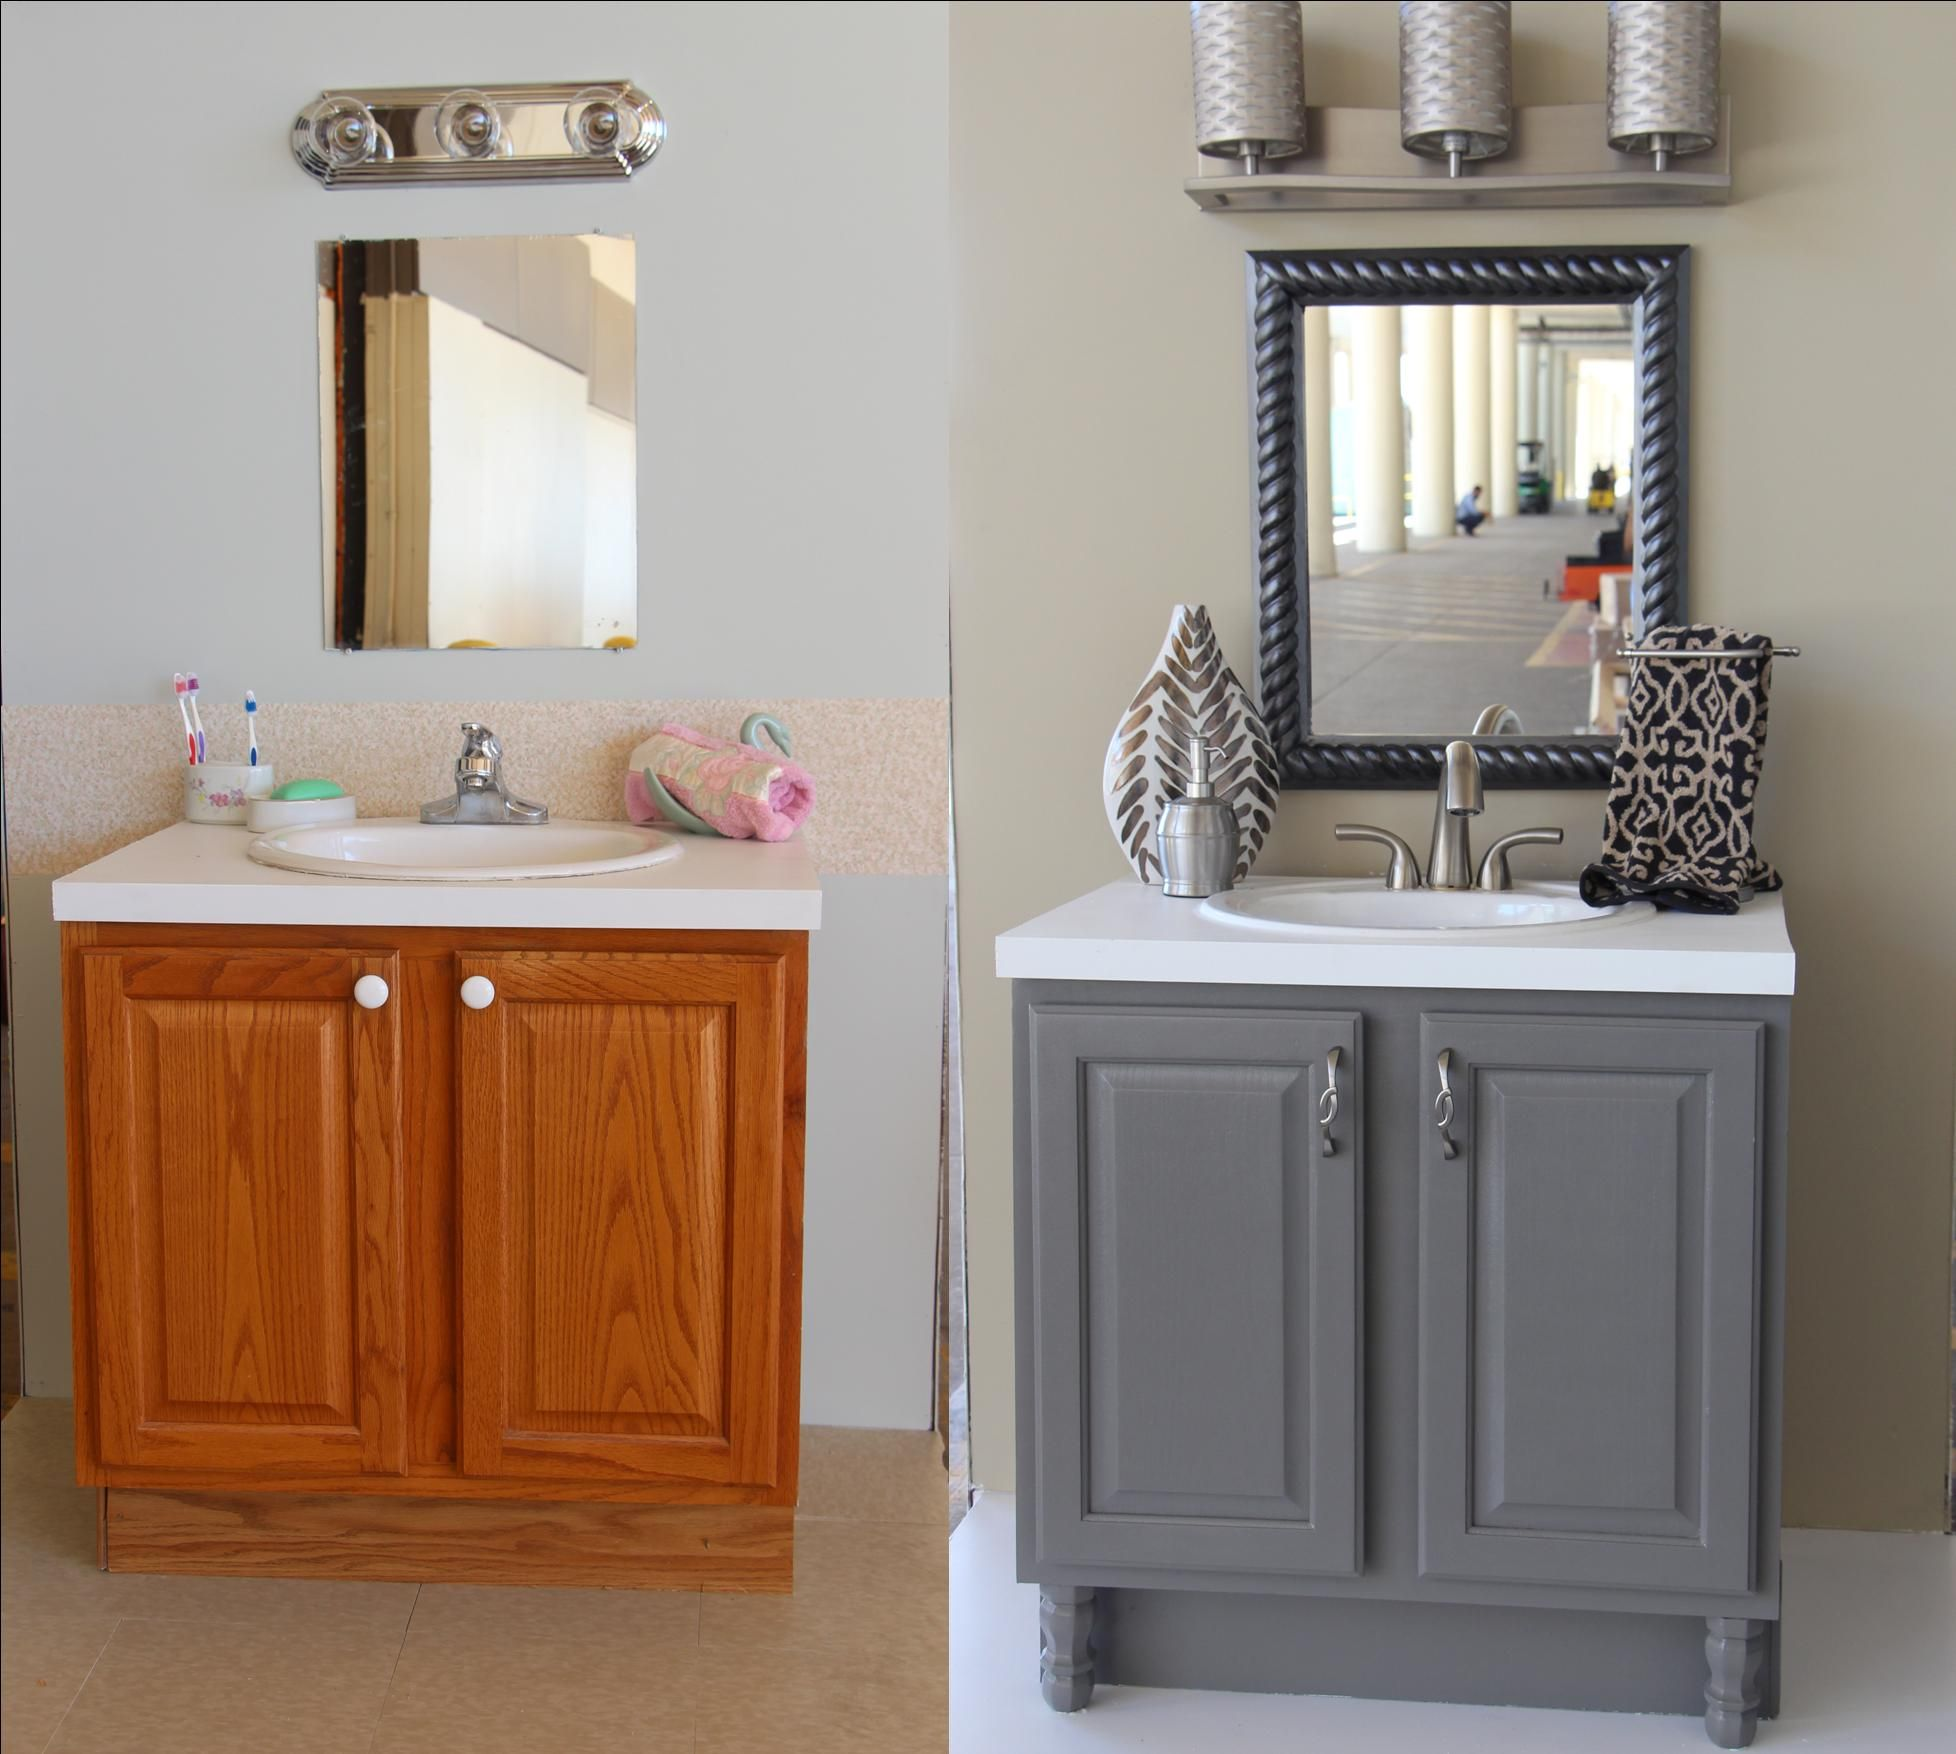 Bathroom updates you can do this weekend bath diy for Small bathroom upgrade ideas